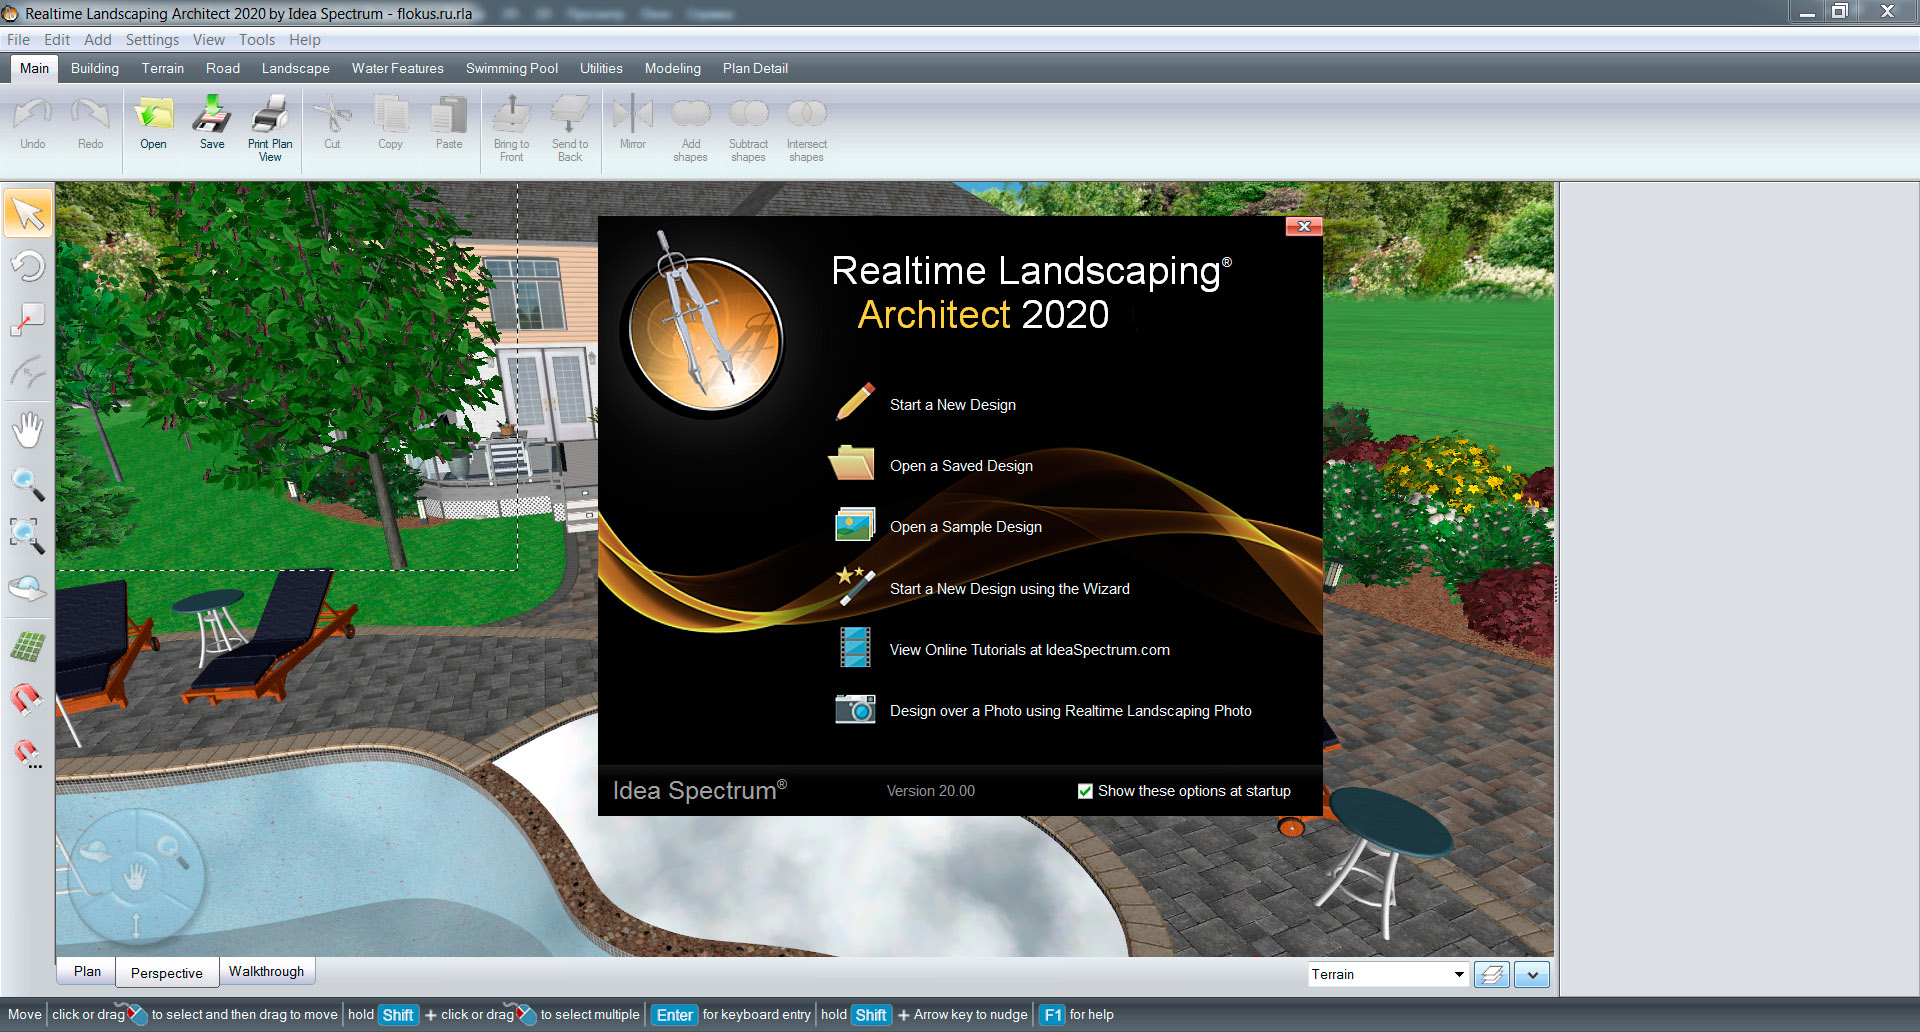 Вышла программа Realtime Landscaping Architect 2020